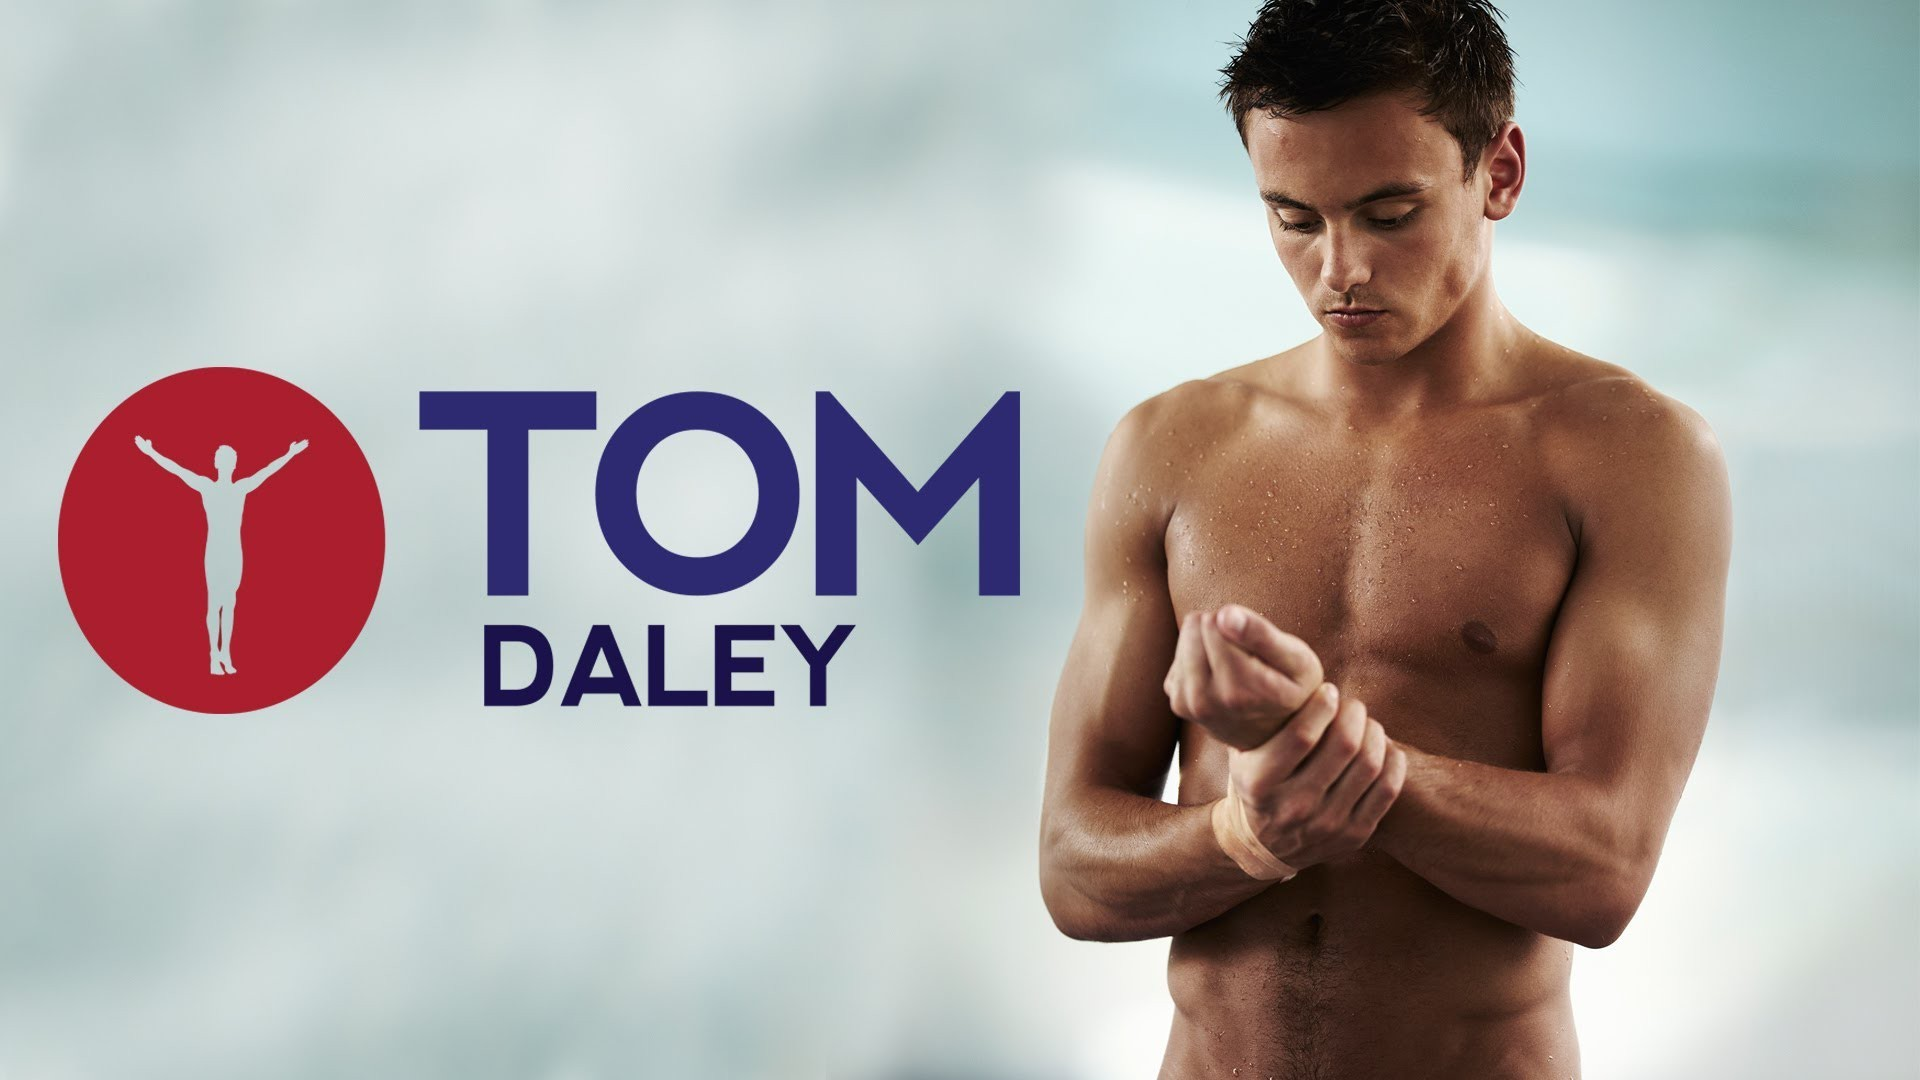 Tom Daley Wallpapers